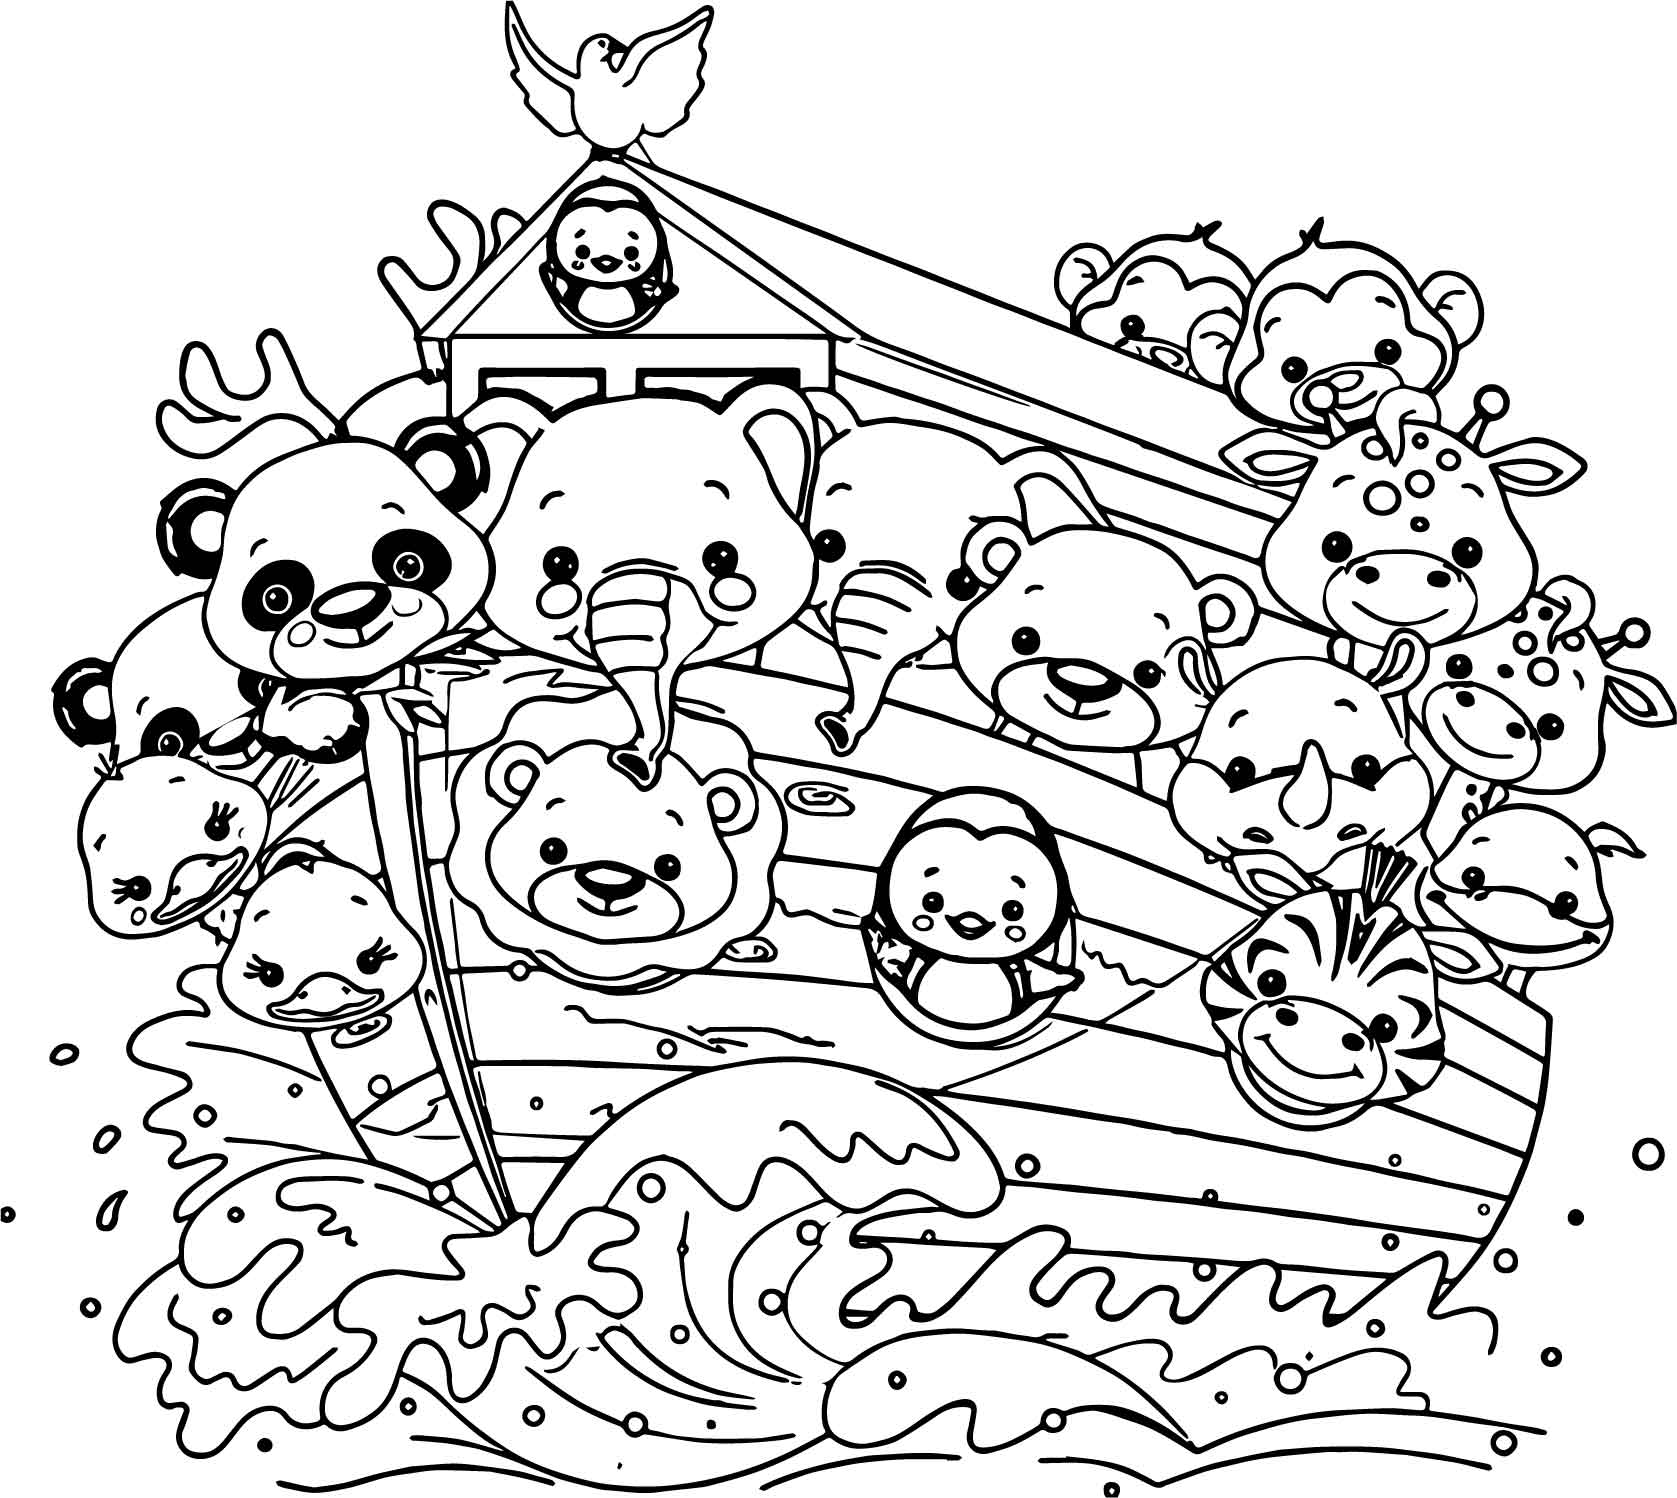 Noah ship cartoon coloring page for Noah s ark printable coloring pages